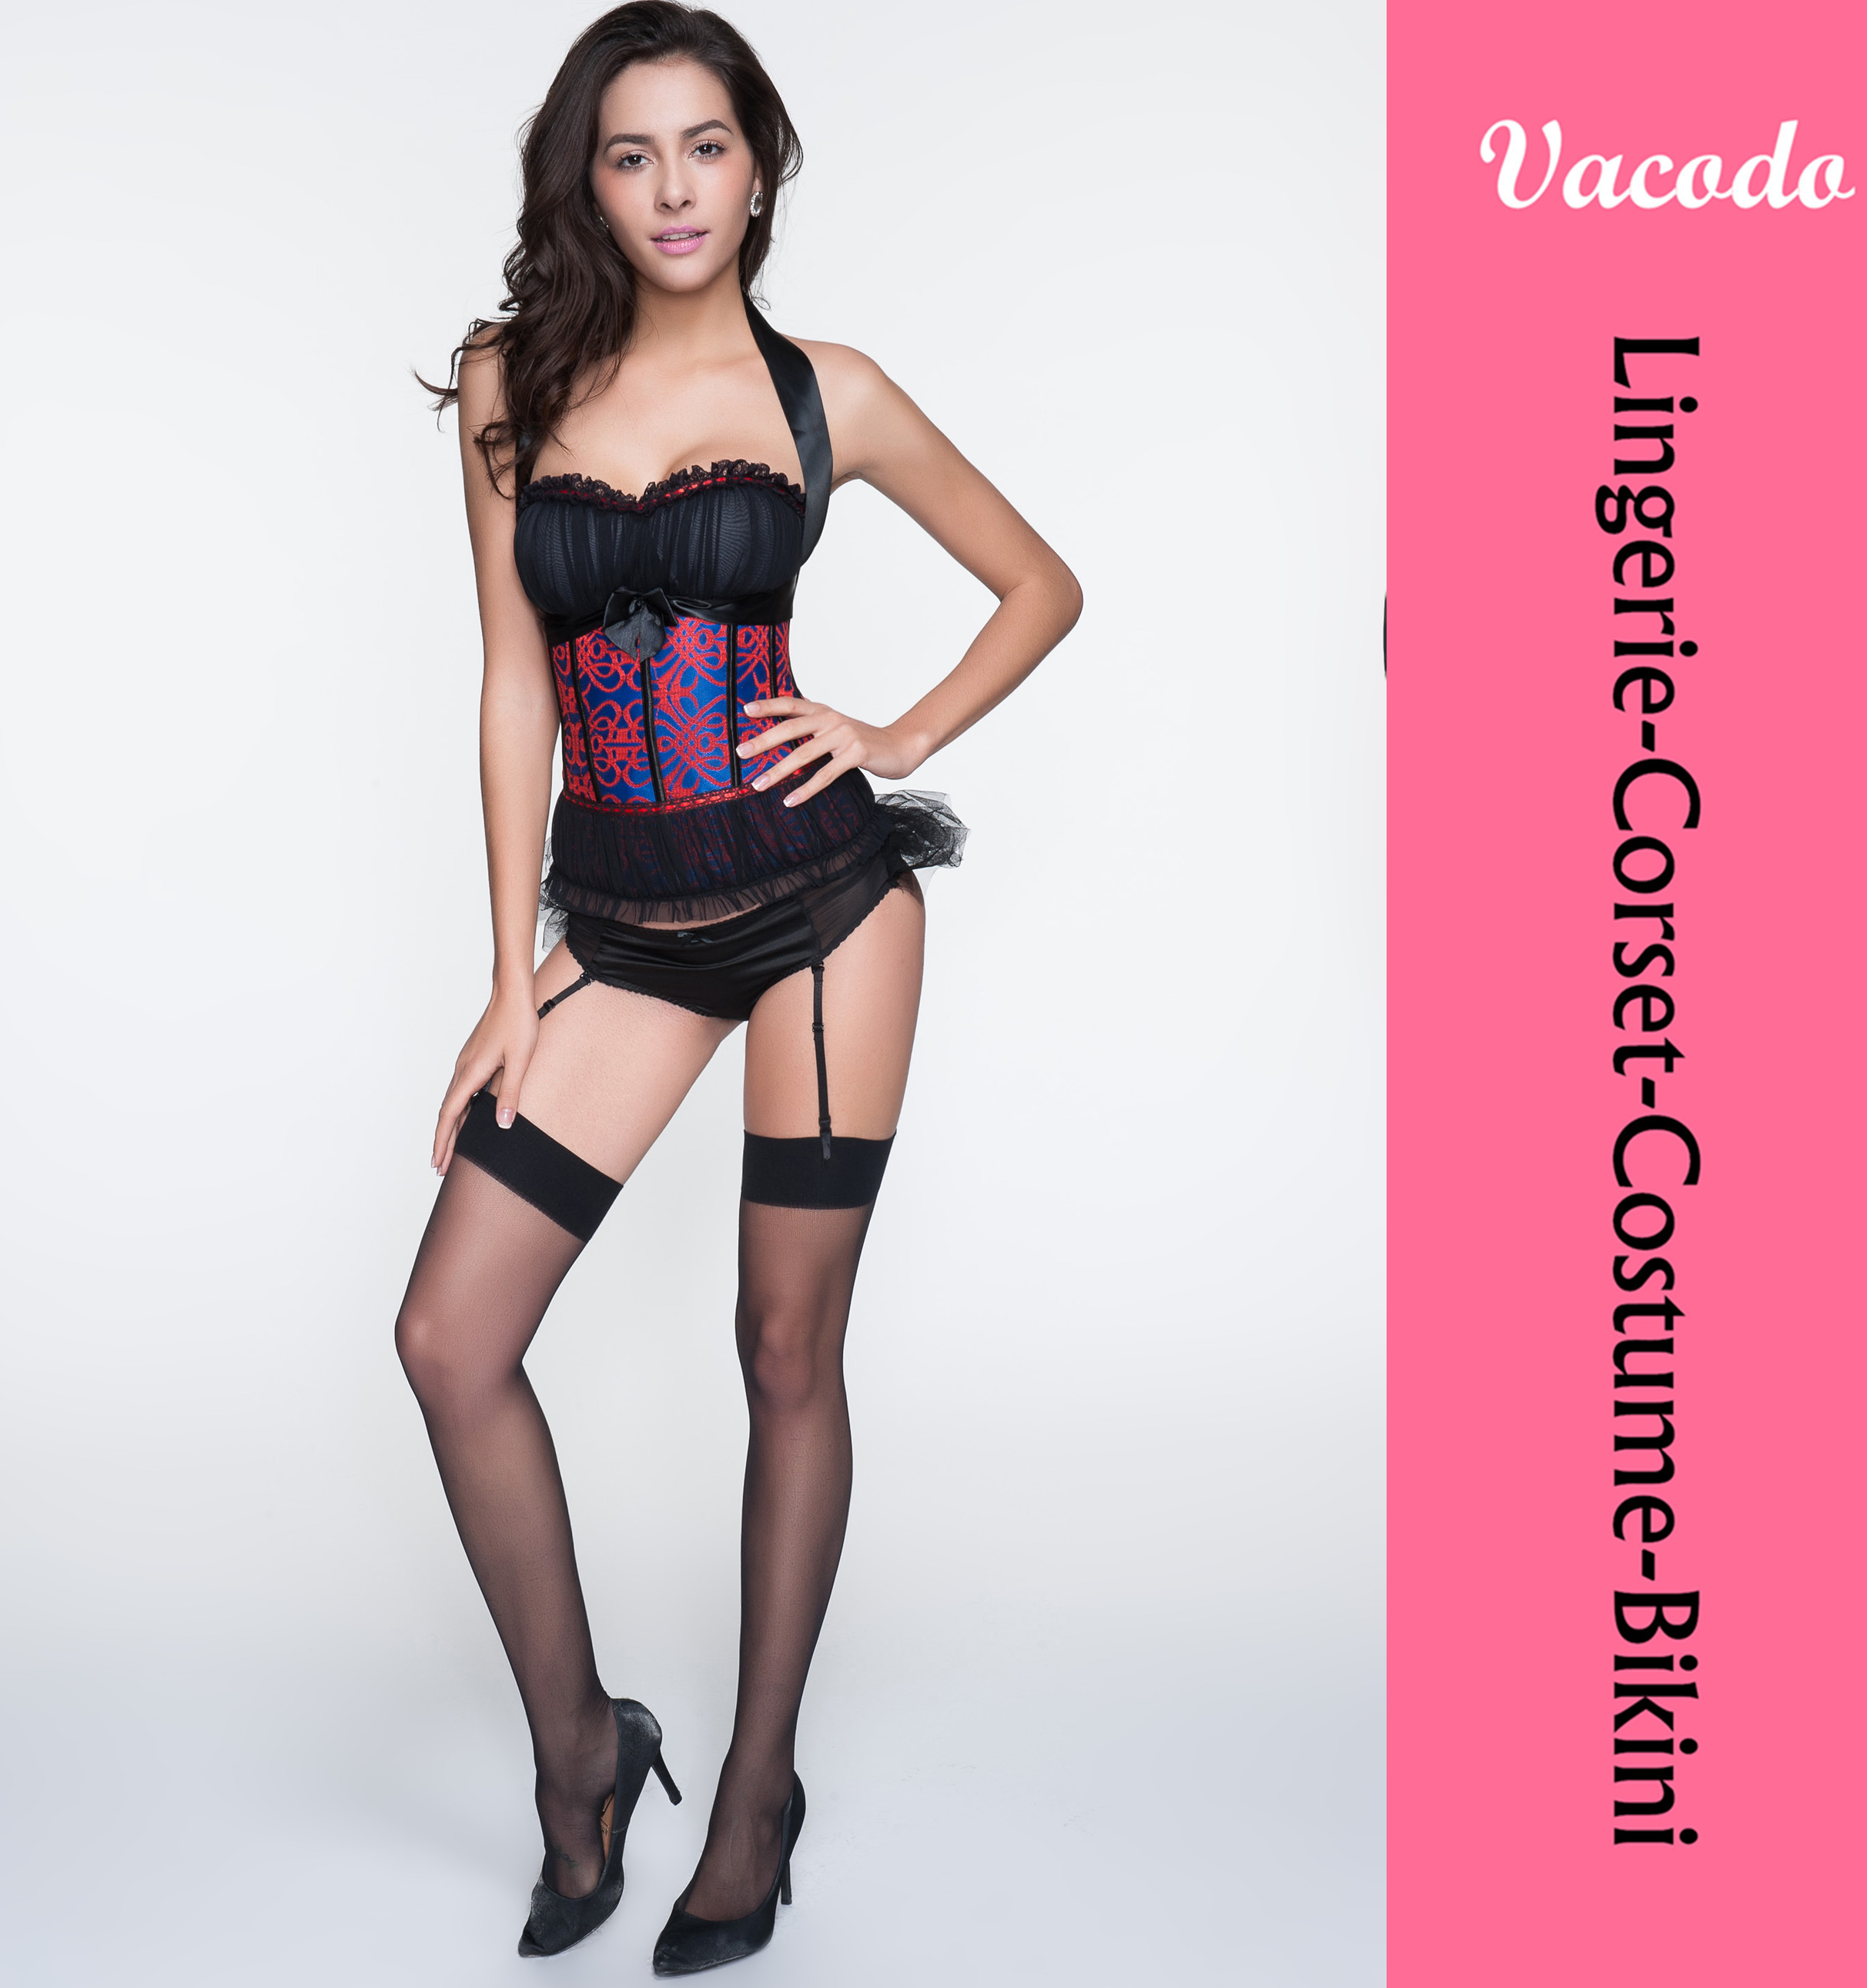 Vacodo 8123 Satin Embroidery Pattern Lace Halter Corset Bustier Corsets